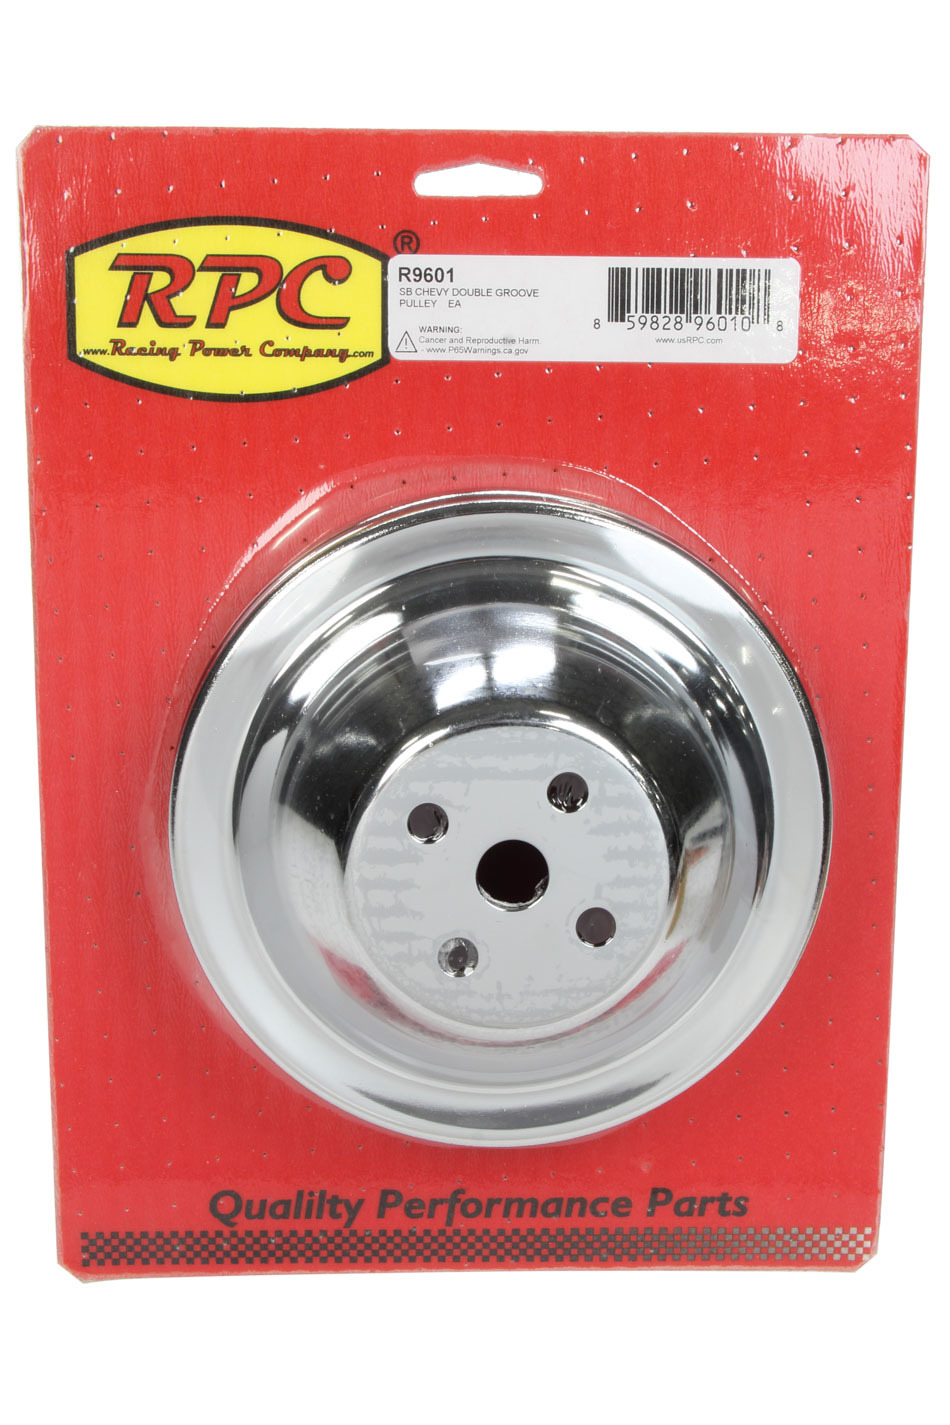 Racing Power Co-packaged SBC SWP 2 GROOVE WATER P UMP PULLEY CHROME